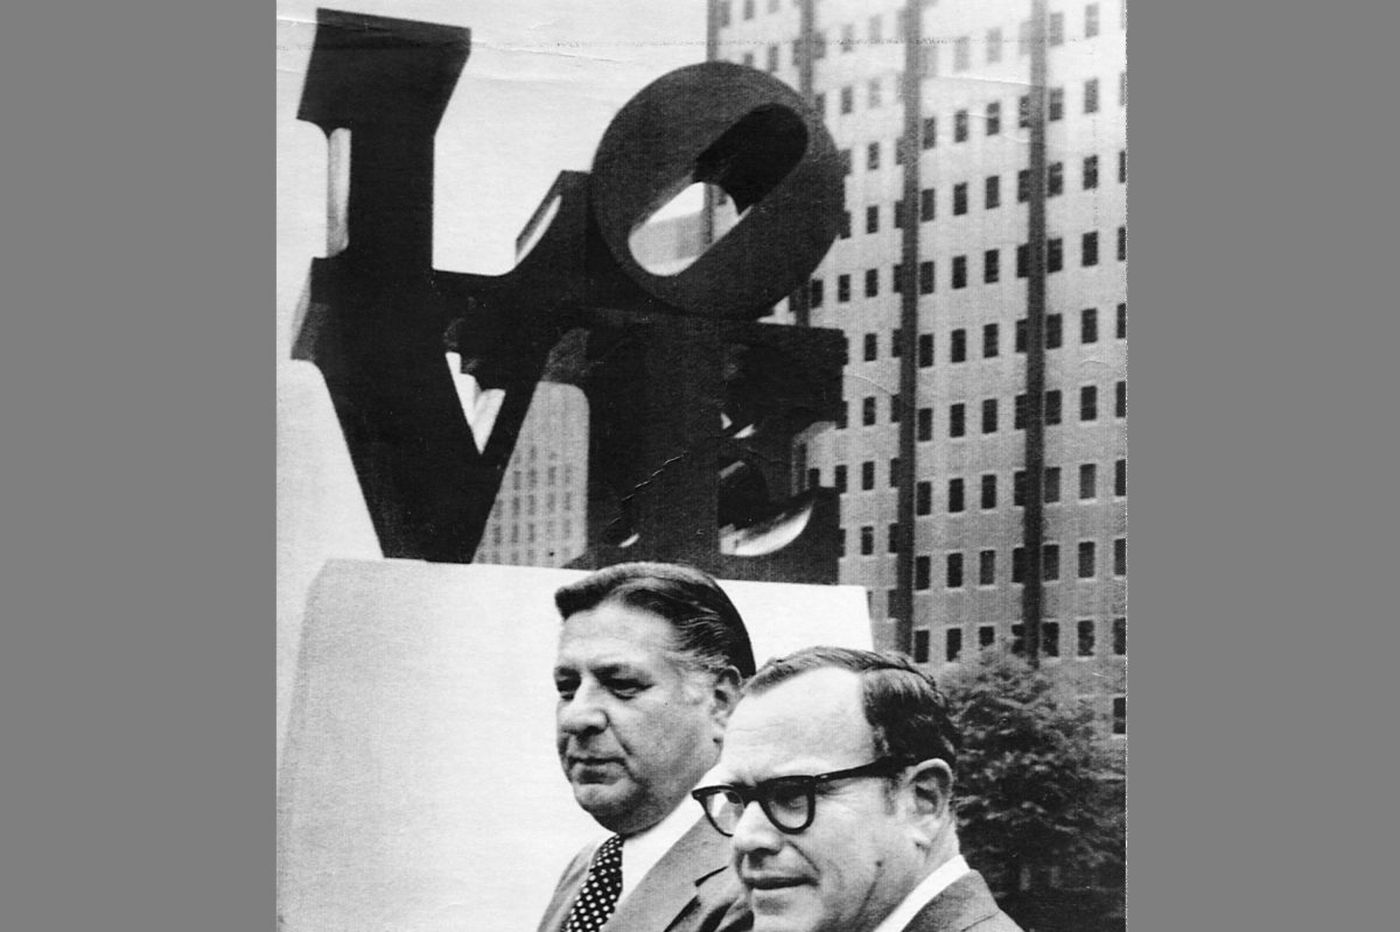 Frank Rizzo's bureaucrats almost got rid of the LOVE sculpture, but Sixers owner Fitz Dixon saved it